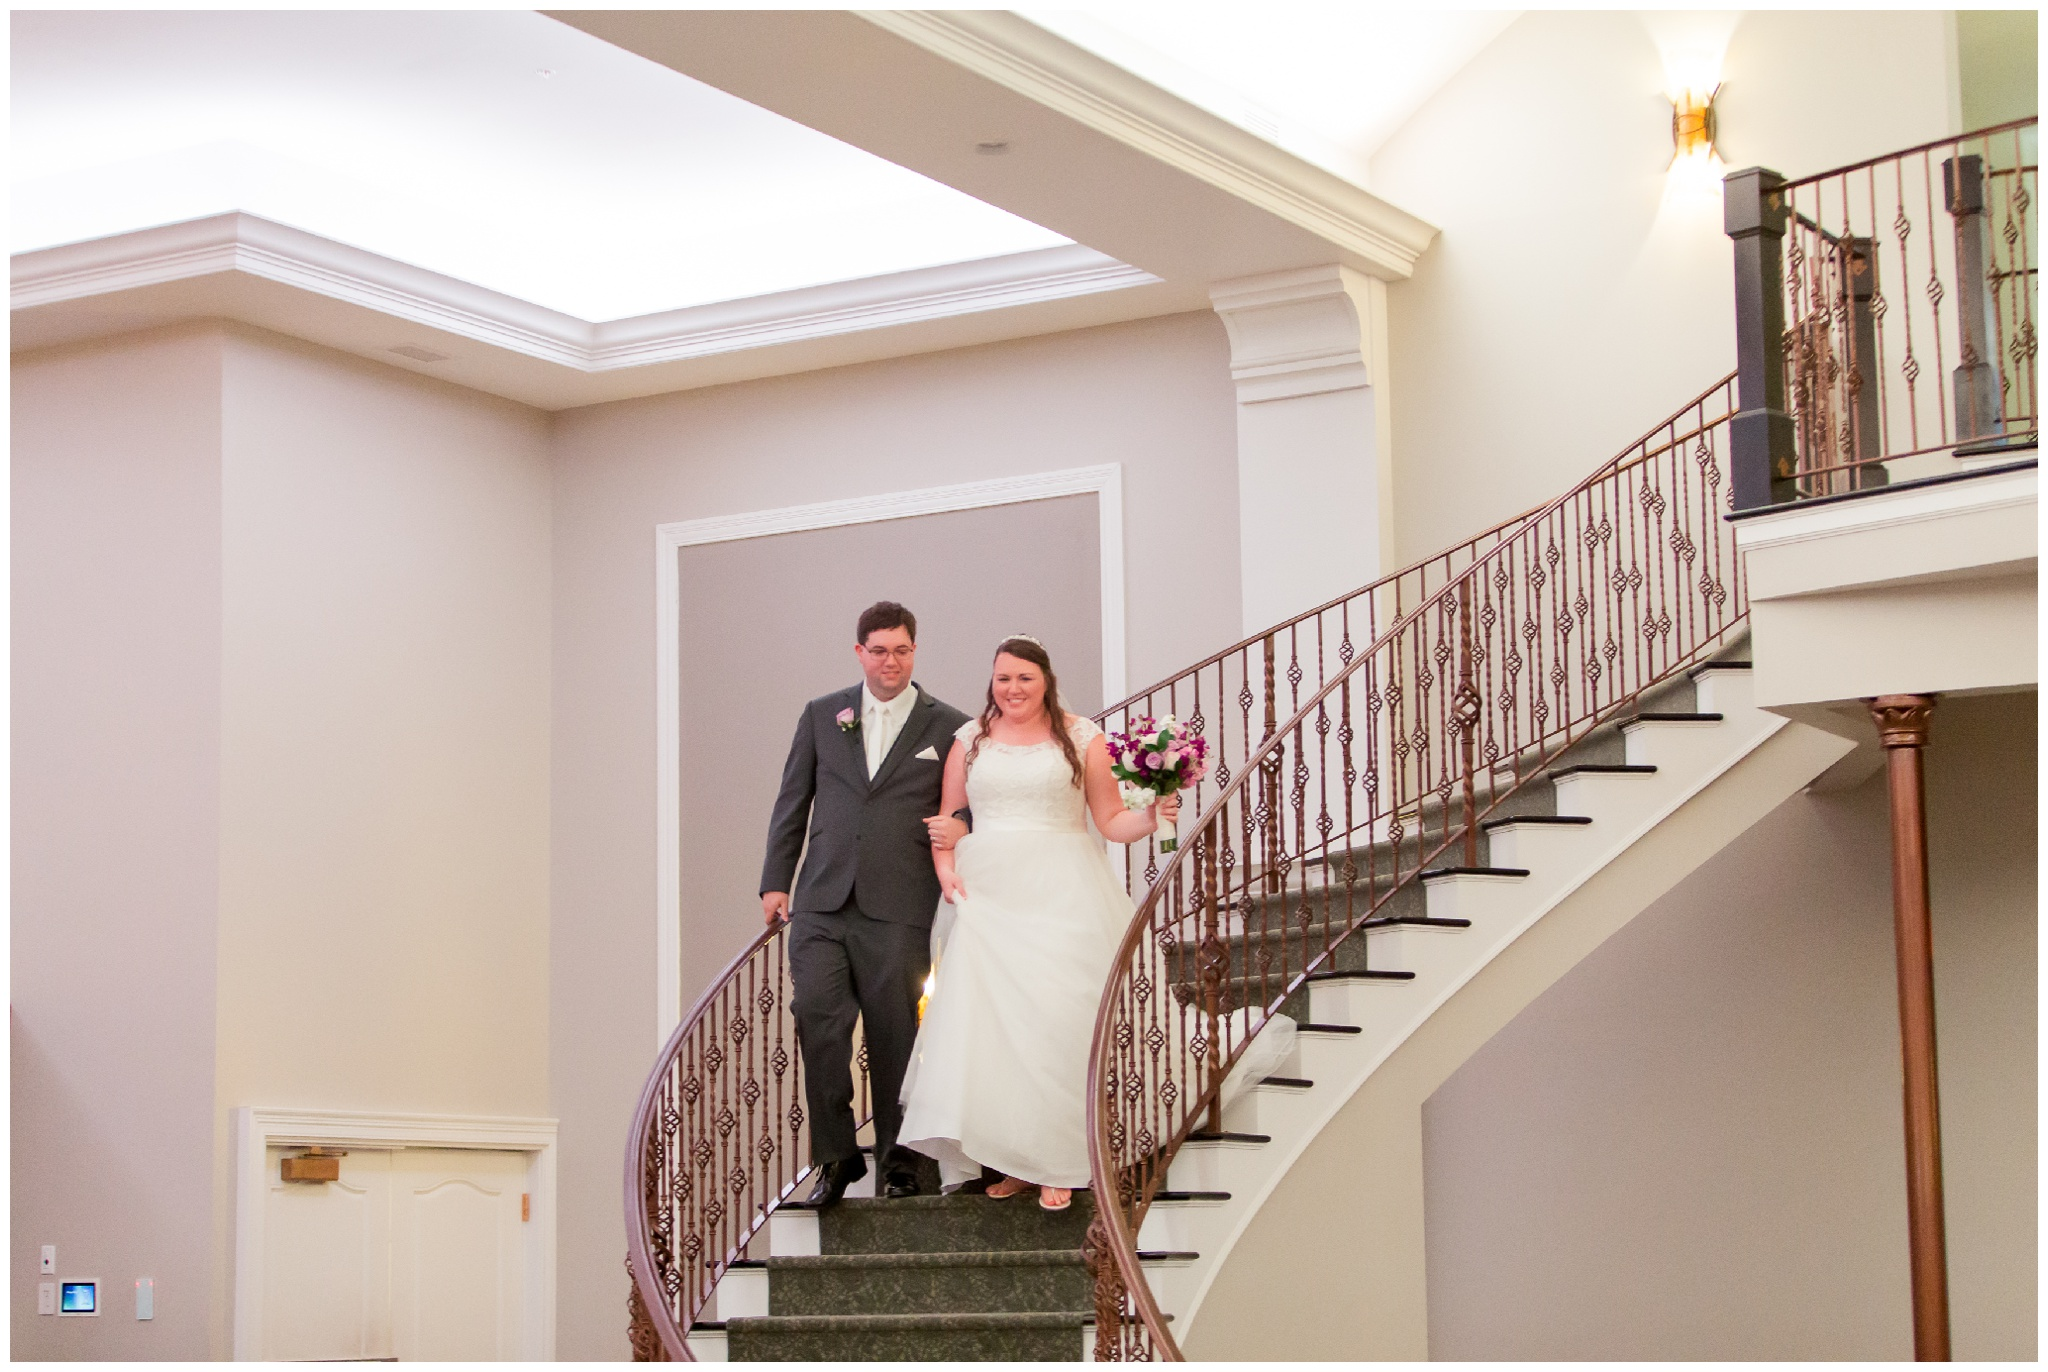 bride and groom on stairs at Bel Air Events in Kokomo Indiana